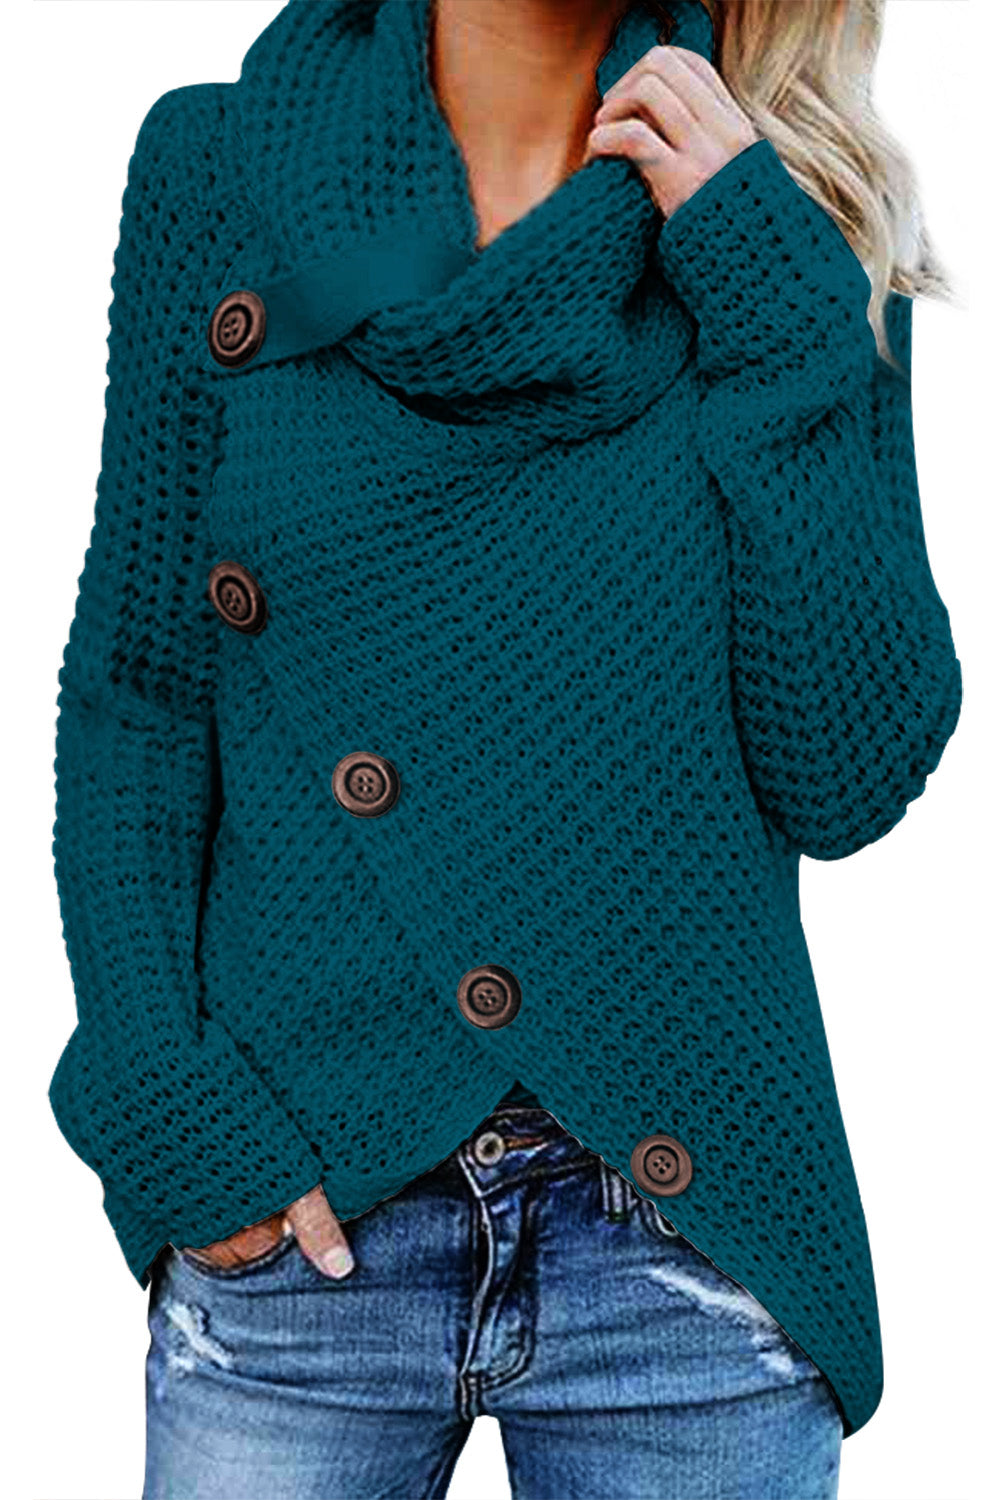 Chic Her Fashion Slate Blue Buttoned Wrap Turtleneck Sweater